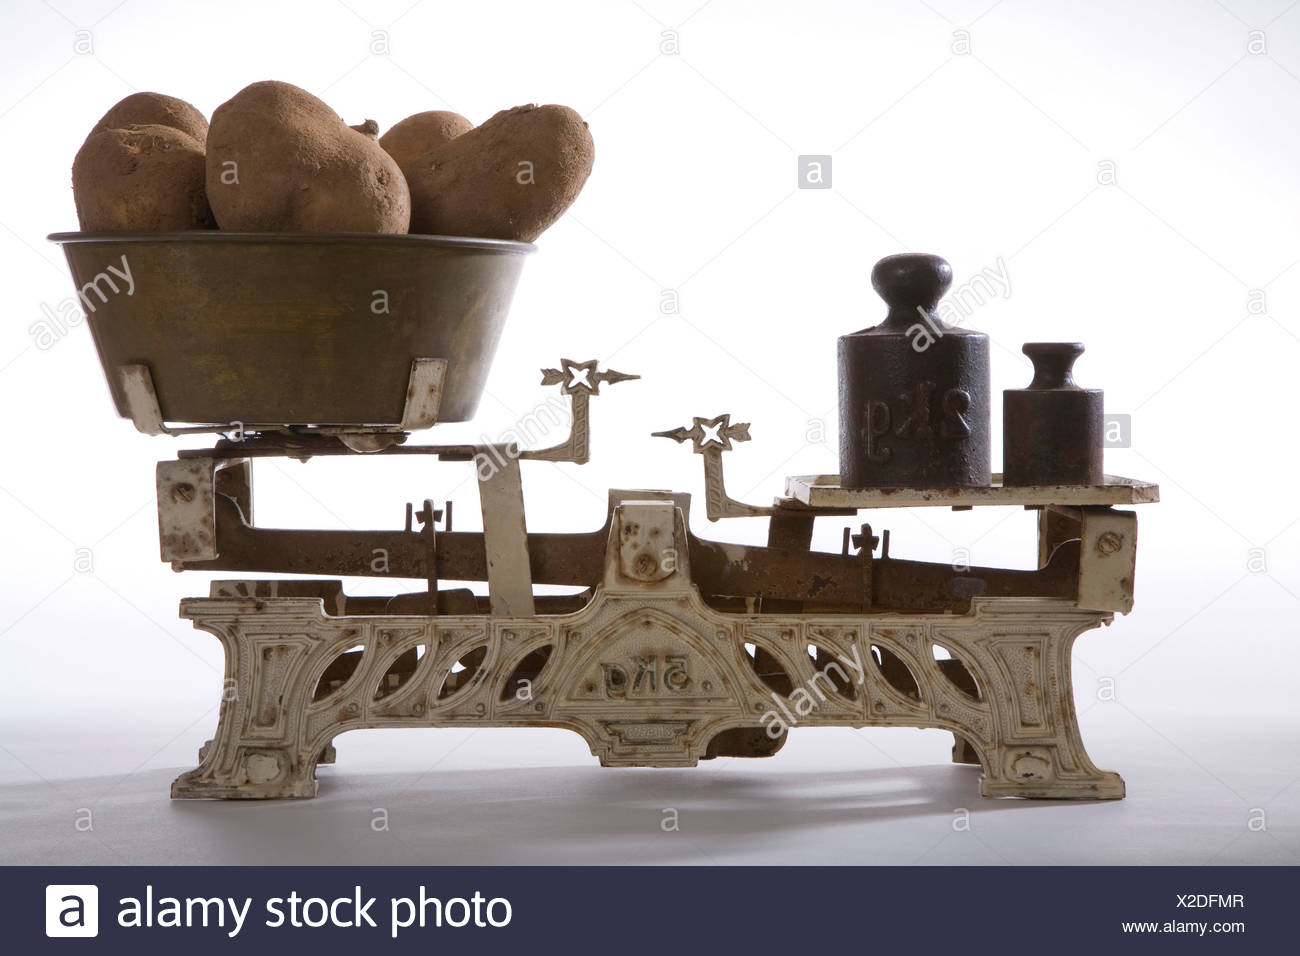 Old market scale, close up - Stock Image